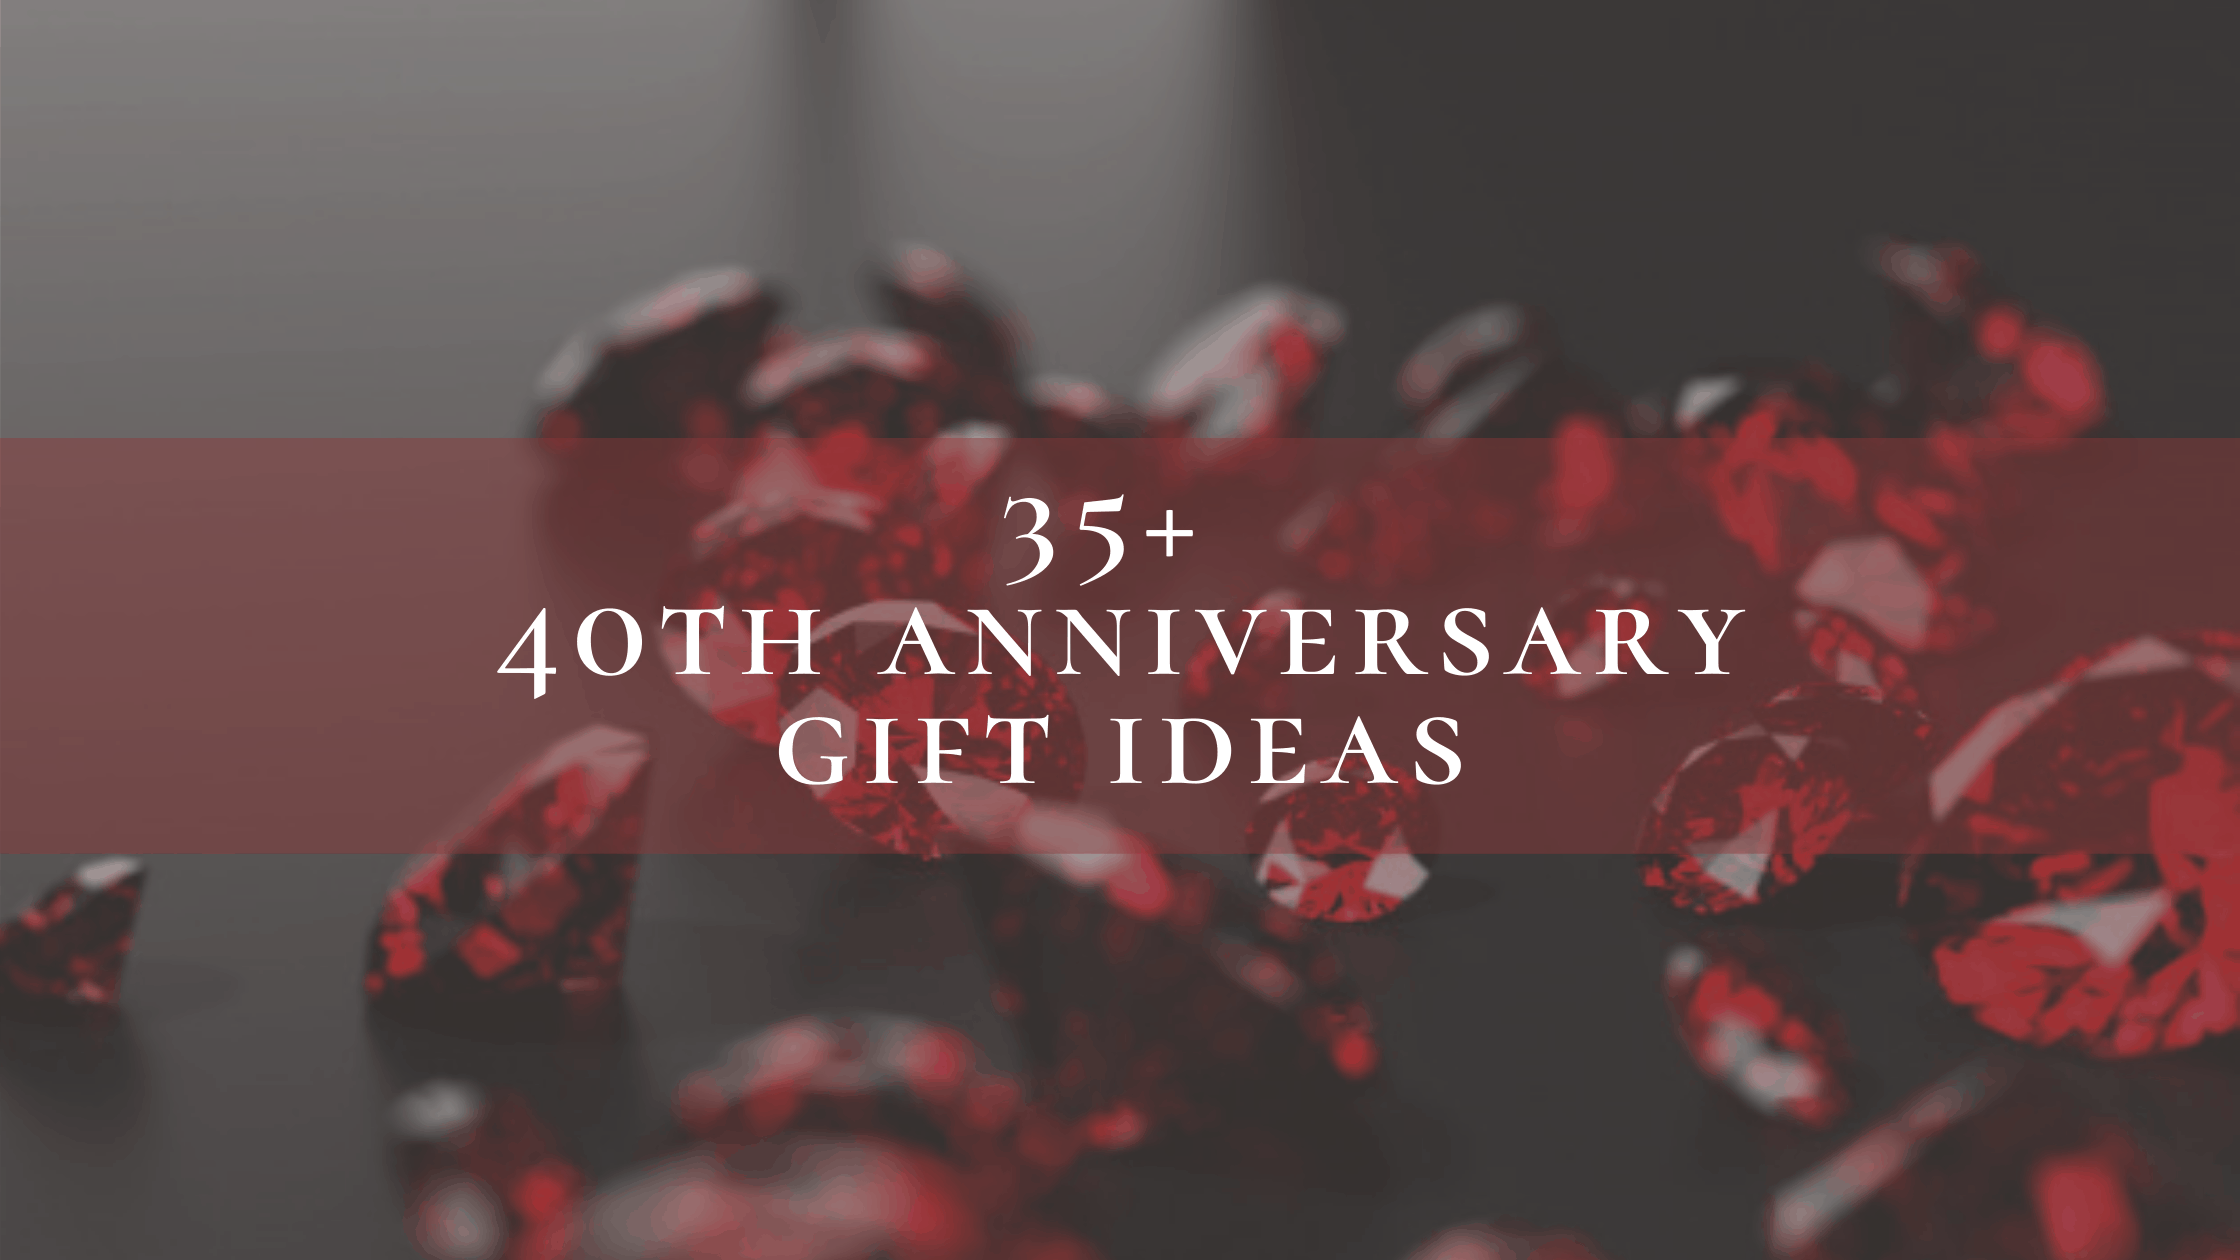 35+ Traditional and Modern 40th Anniversary Gift Ideas for Him and Her